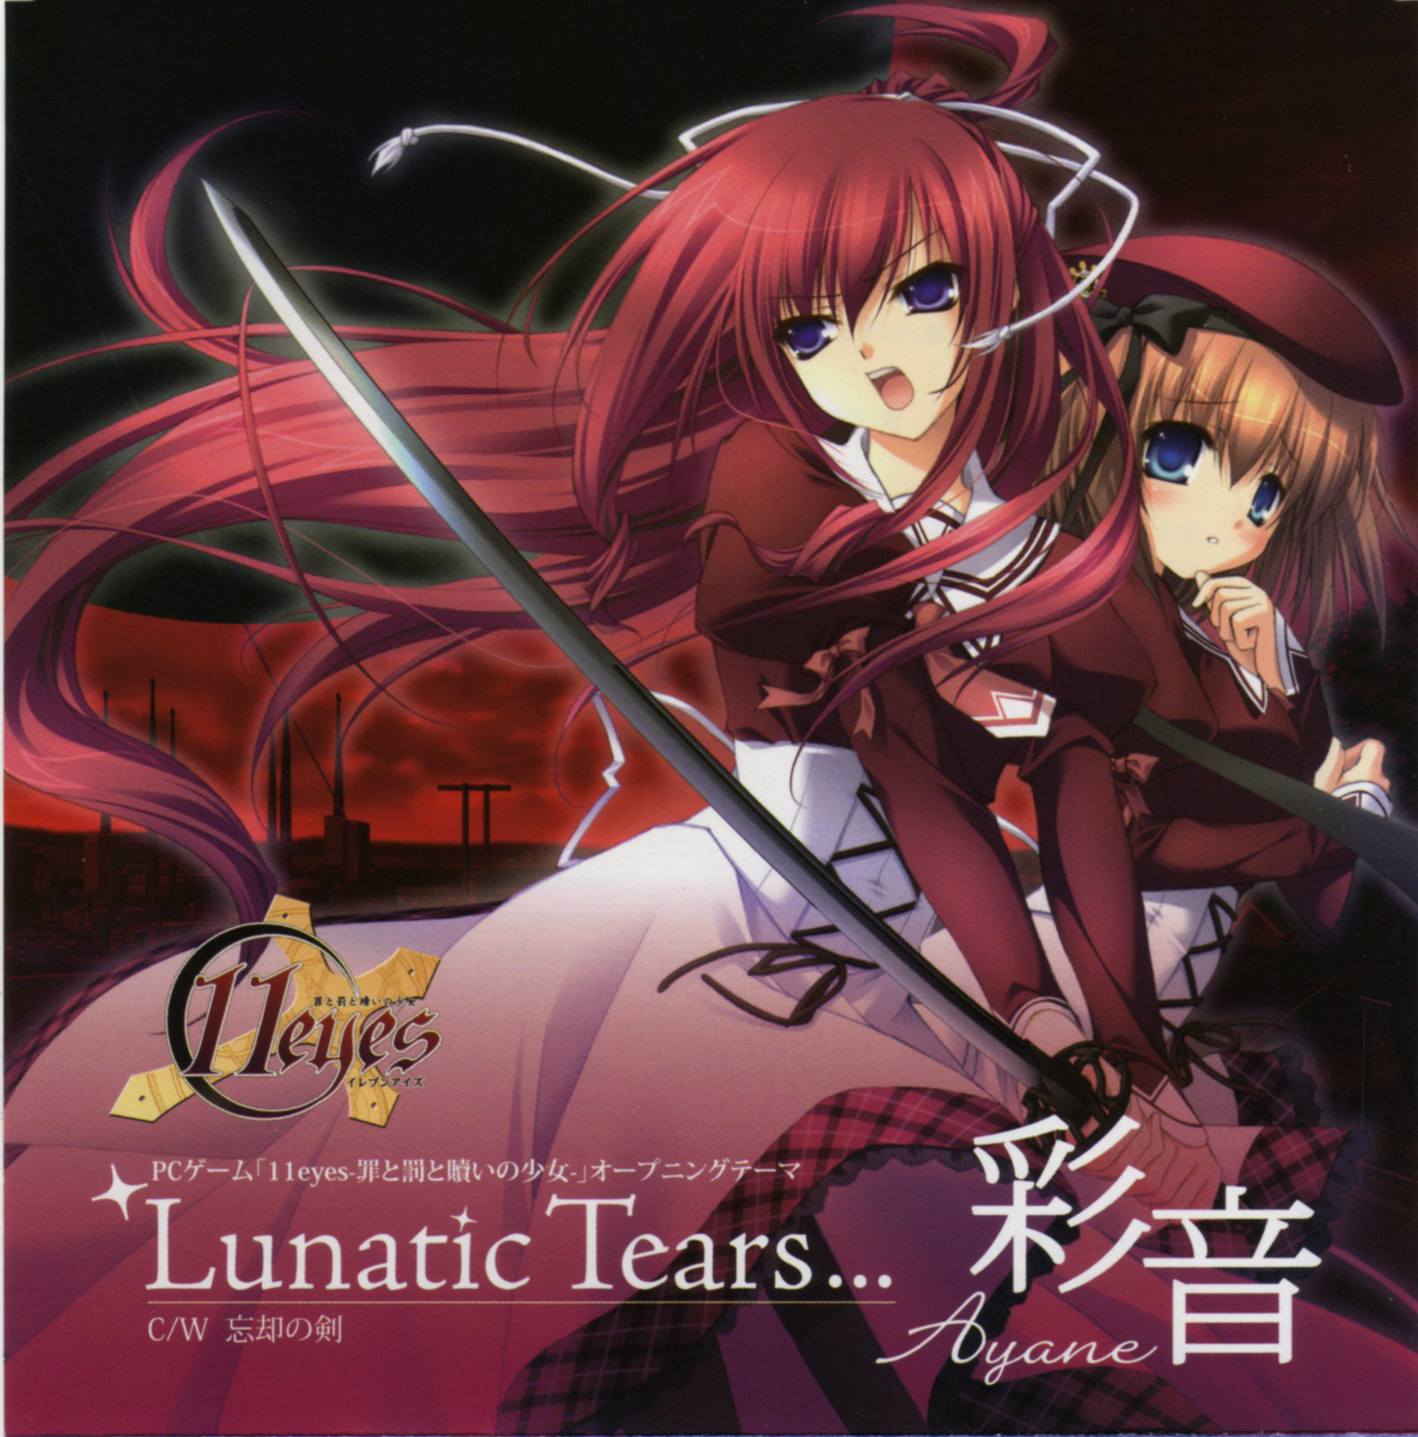 Lunatic Tears...